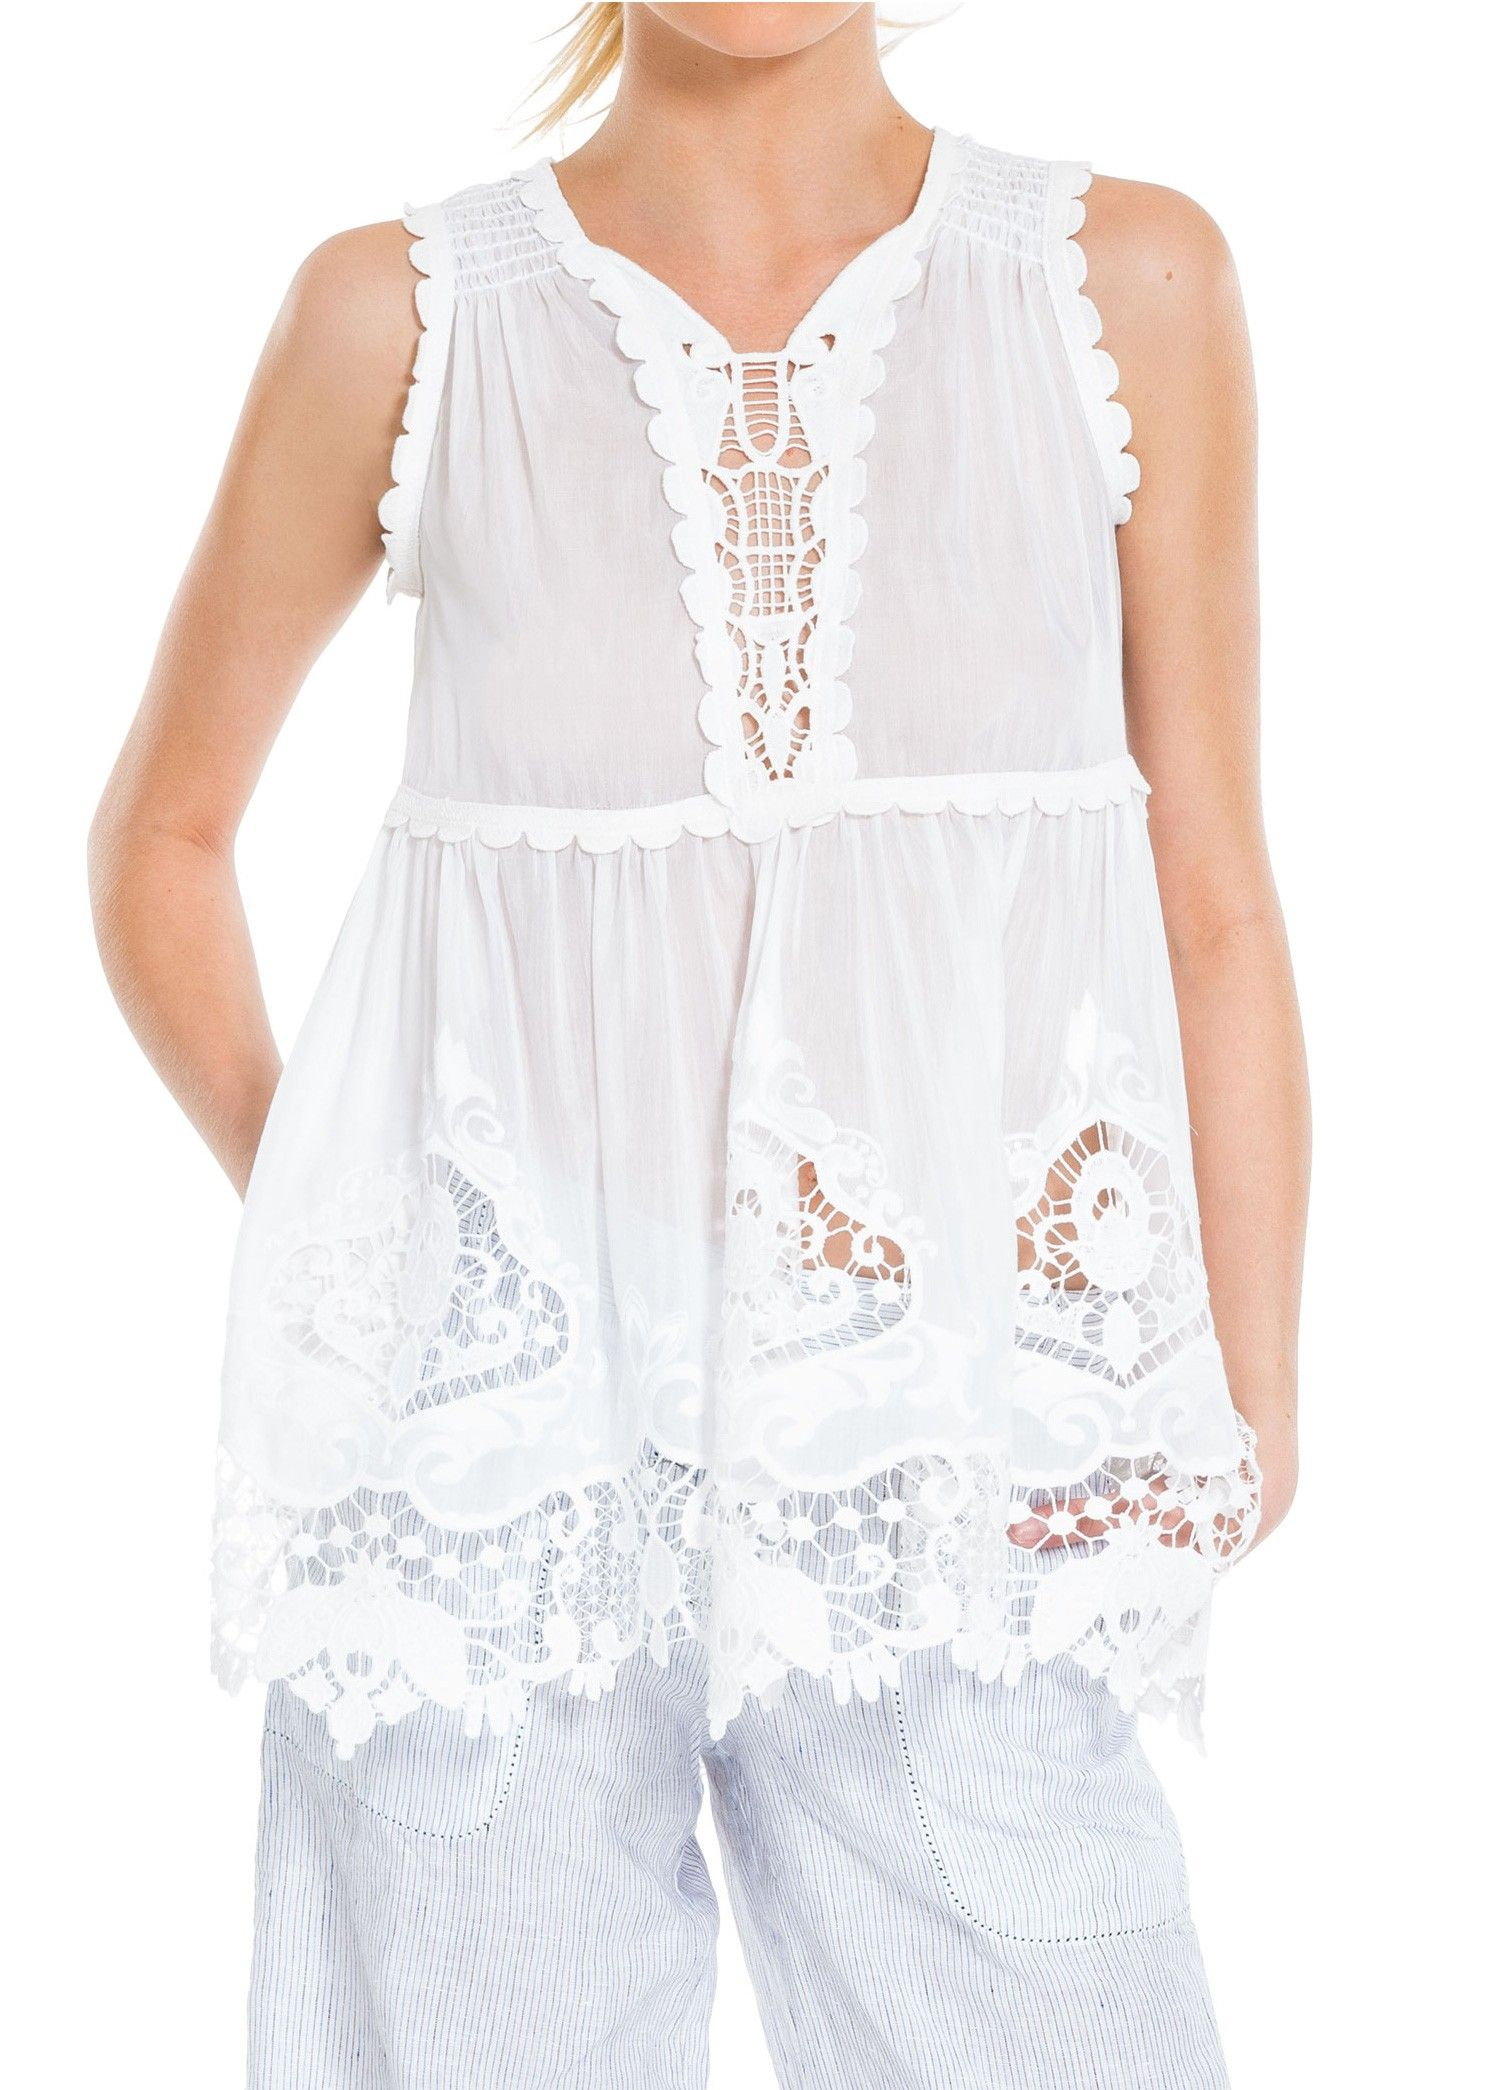 EMBROIDERED COTTON & SILK VOILE SHELL: This light-as-air cotton and silk voile top is accentuated with intricately embroidered inserts lending romantic charm and a subtly vintage vibe.